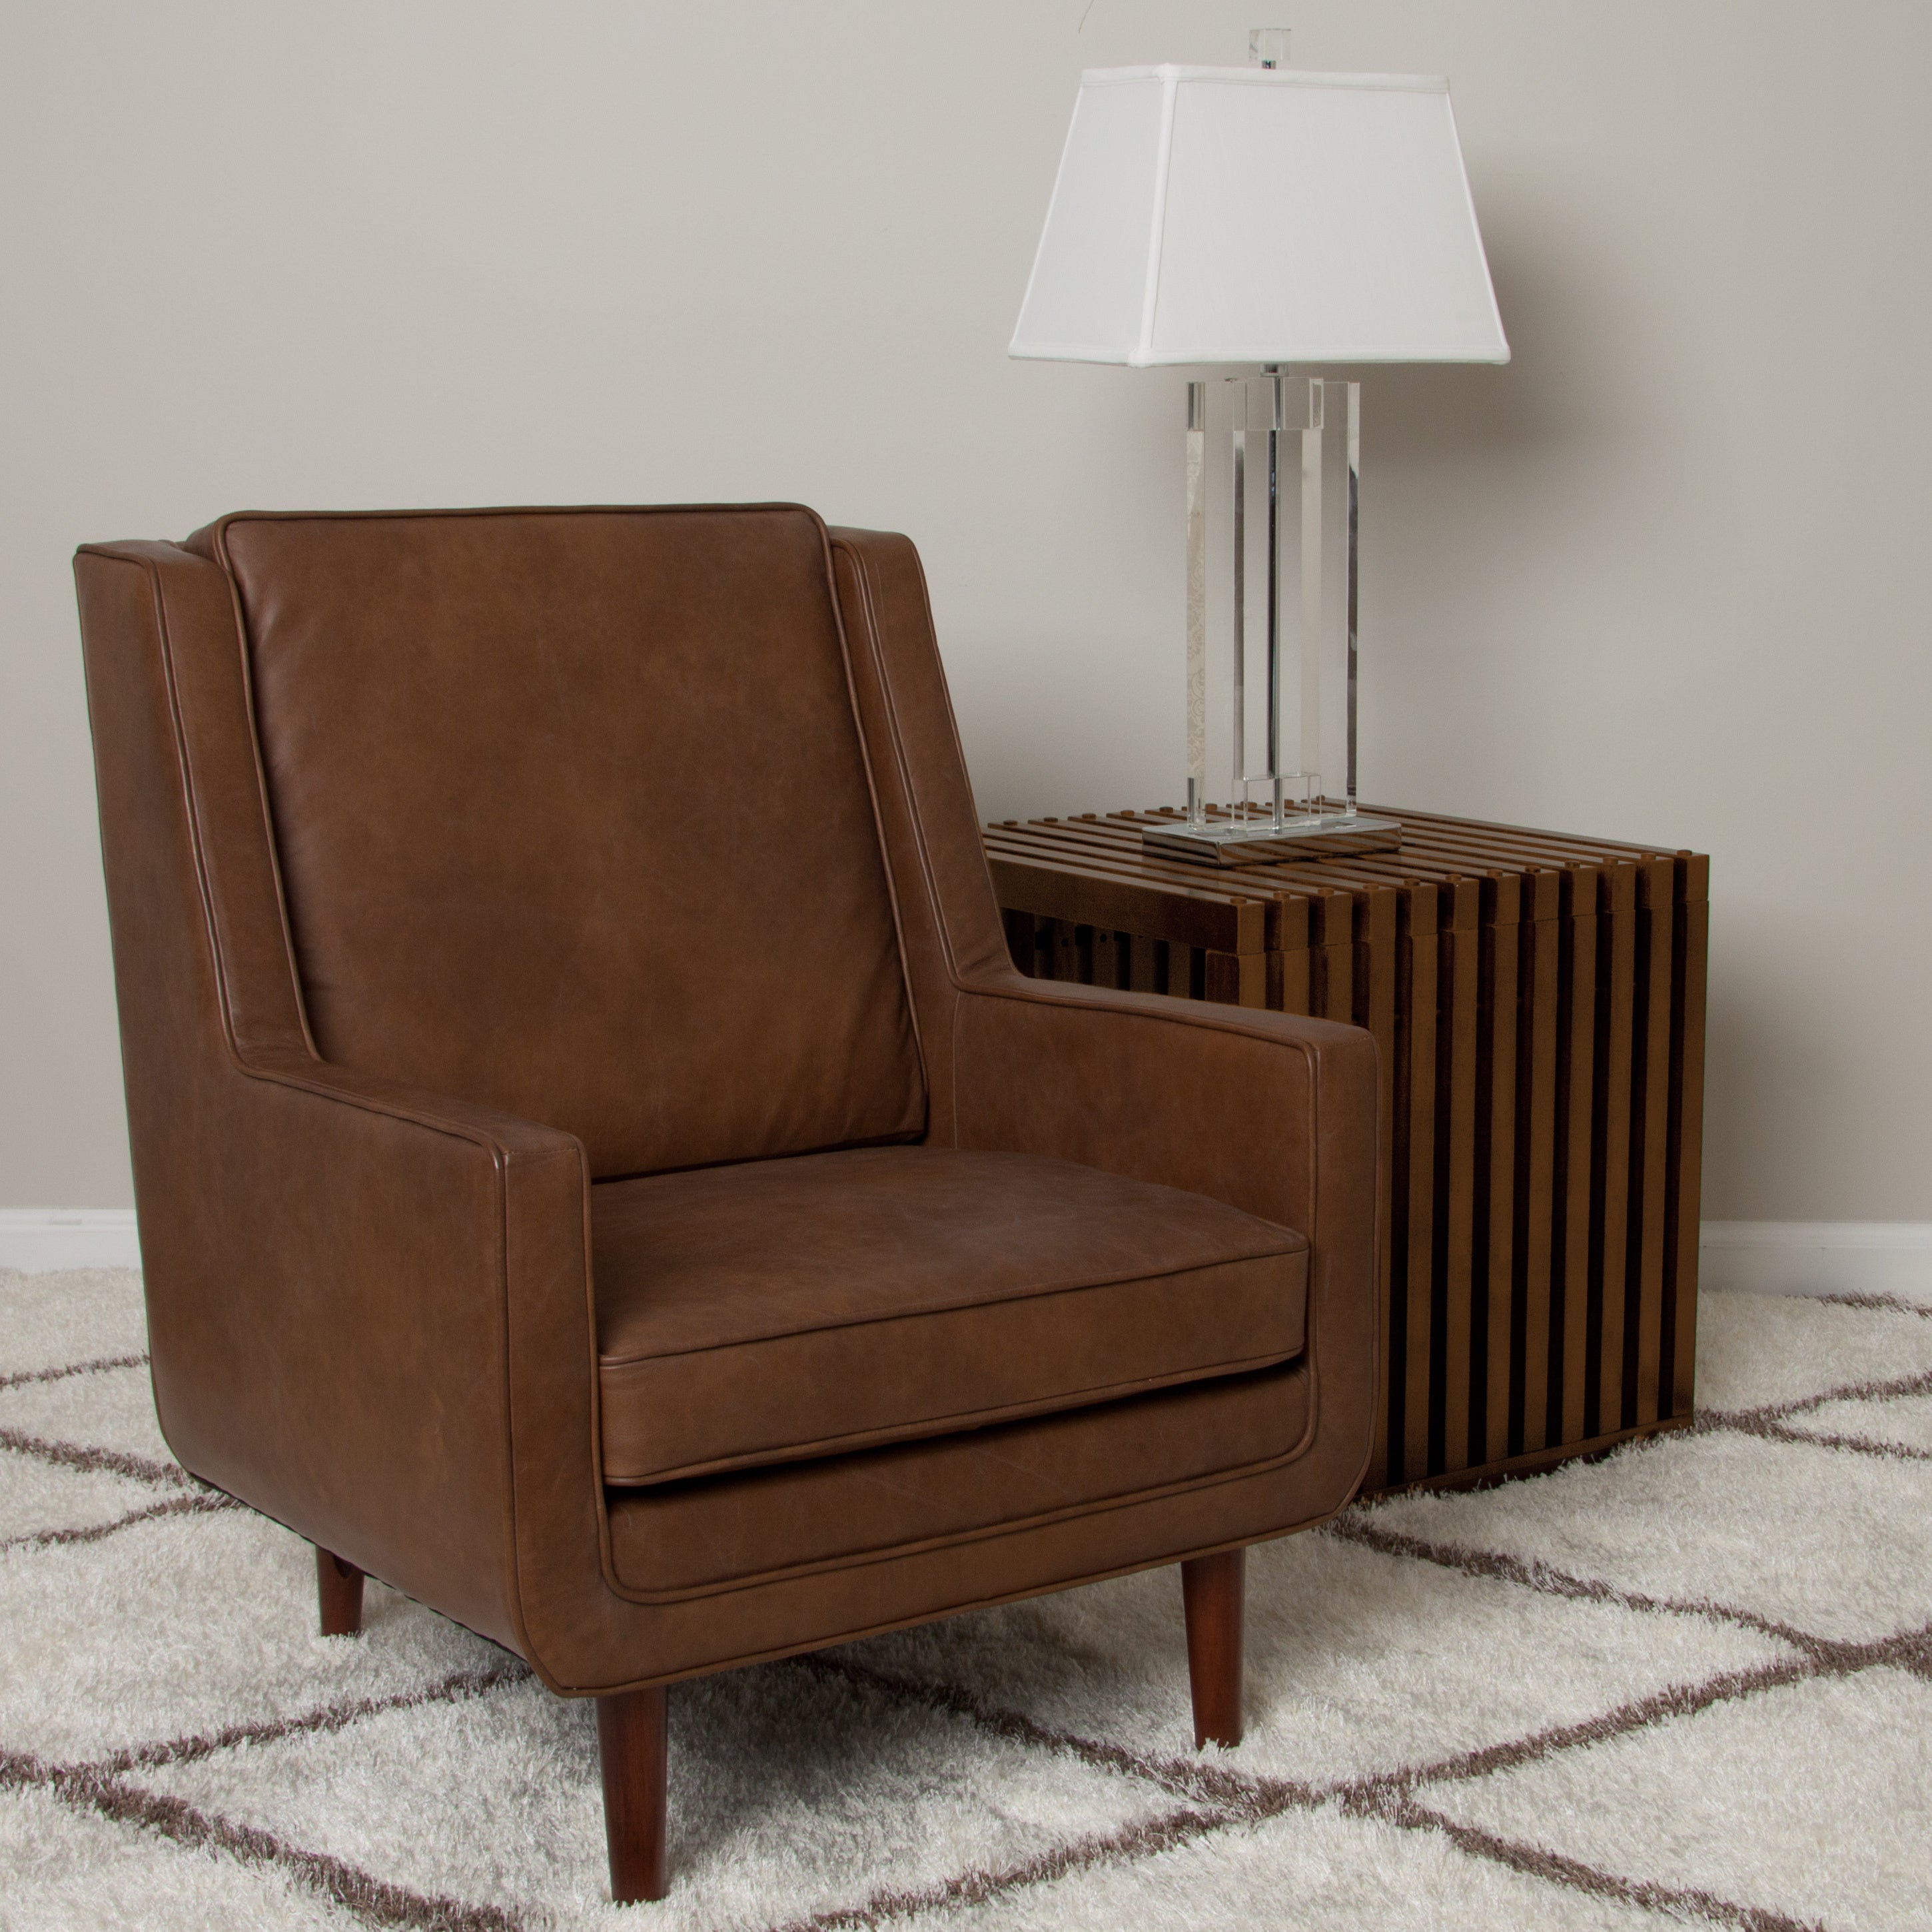 Living Room Bar Oxford: Moss Oxford Leather Tan Accent Chair